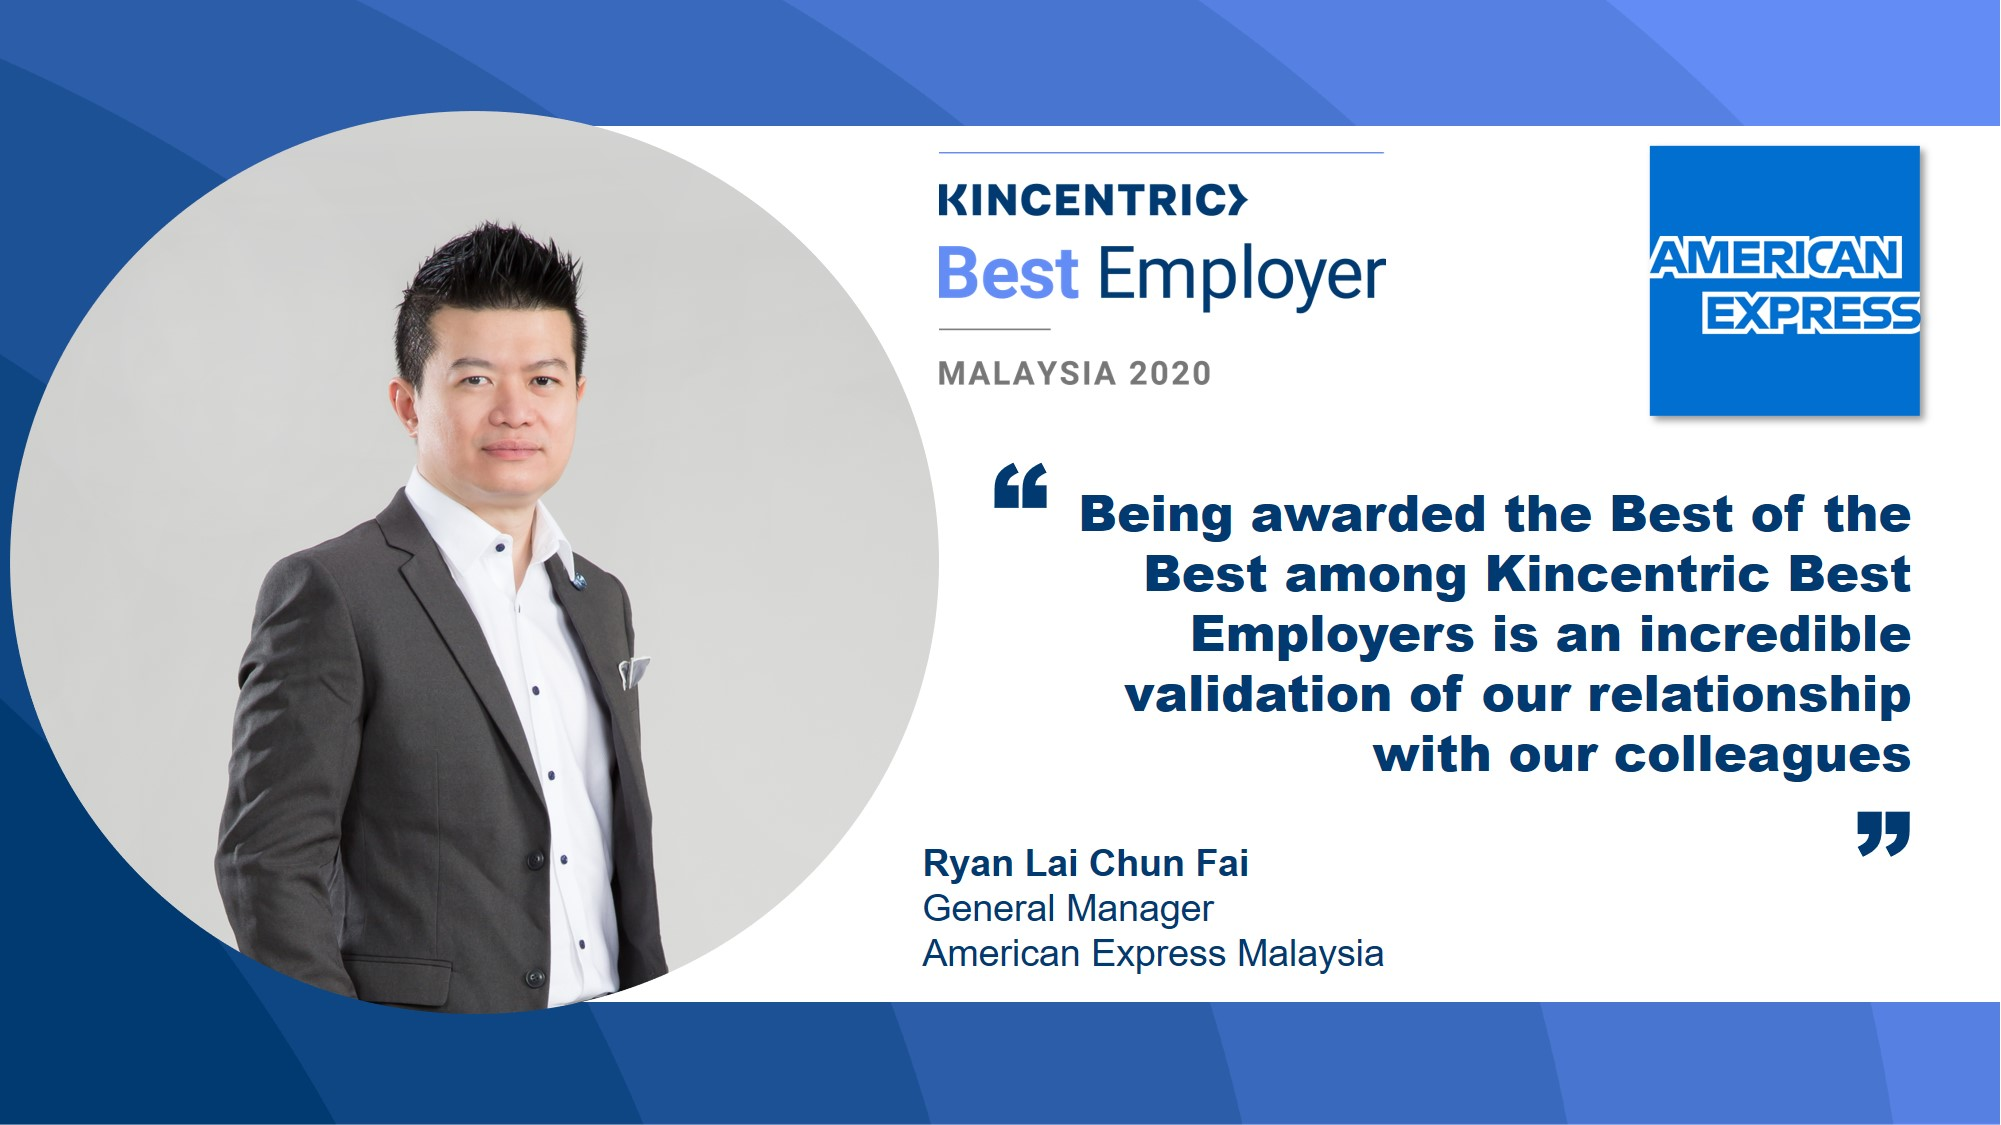 American Express Malaysia on building a culture of transparency and trust through colleague experience